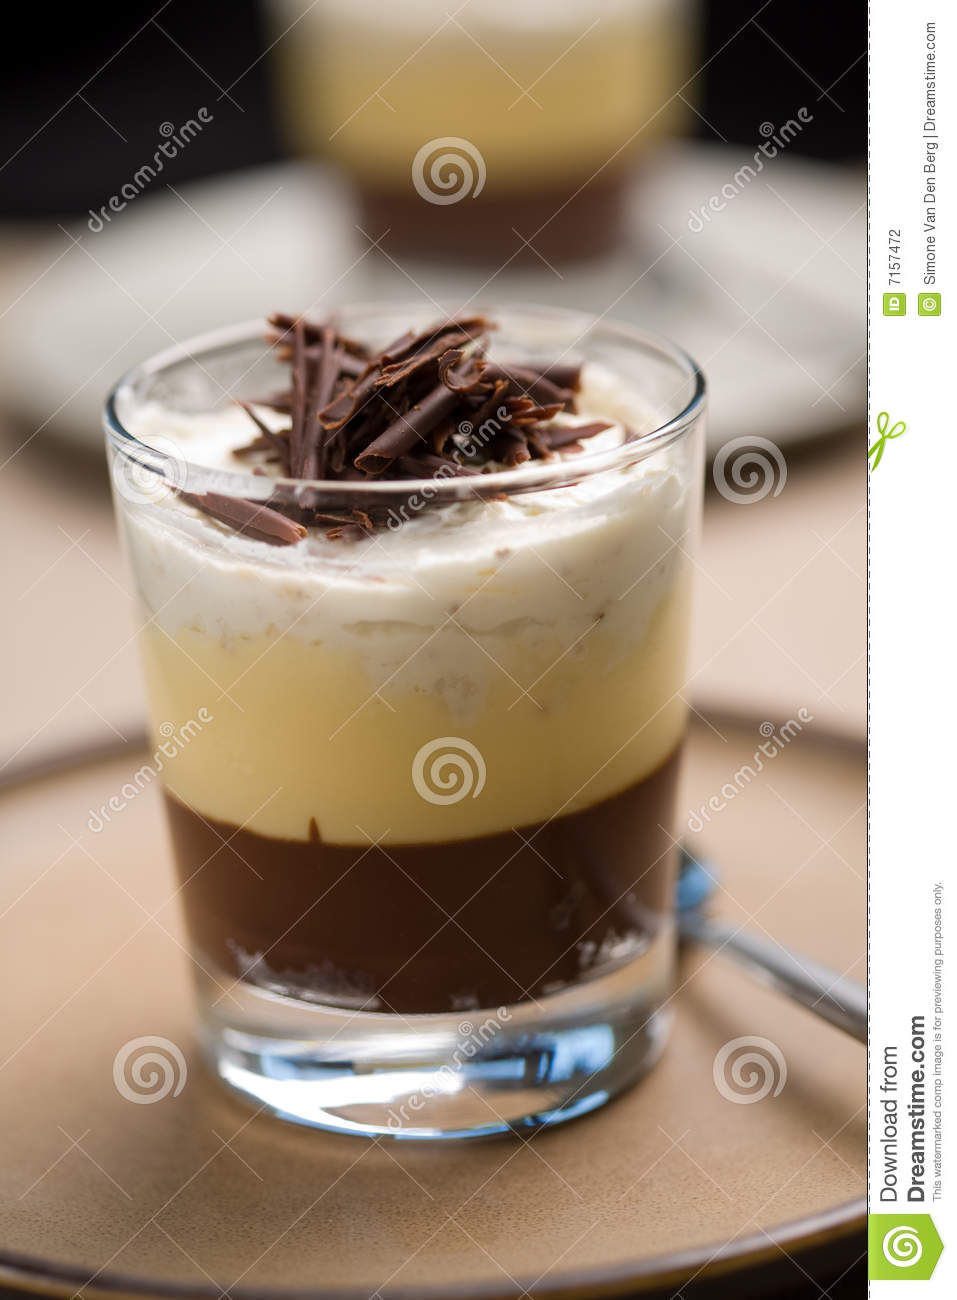 Delicious chocolate trifle with chocolate curls on top.